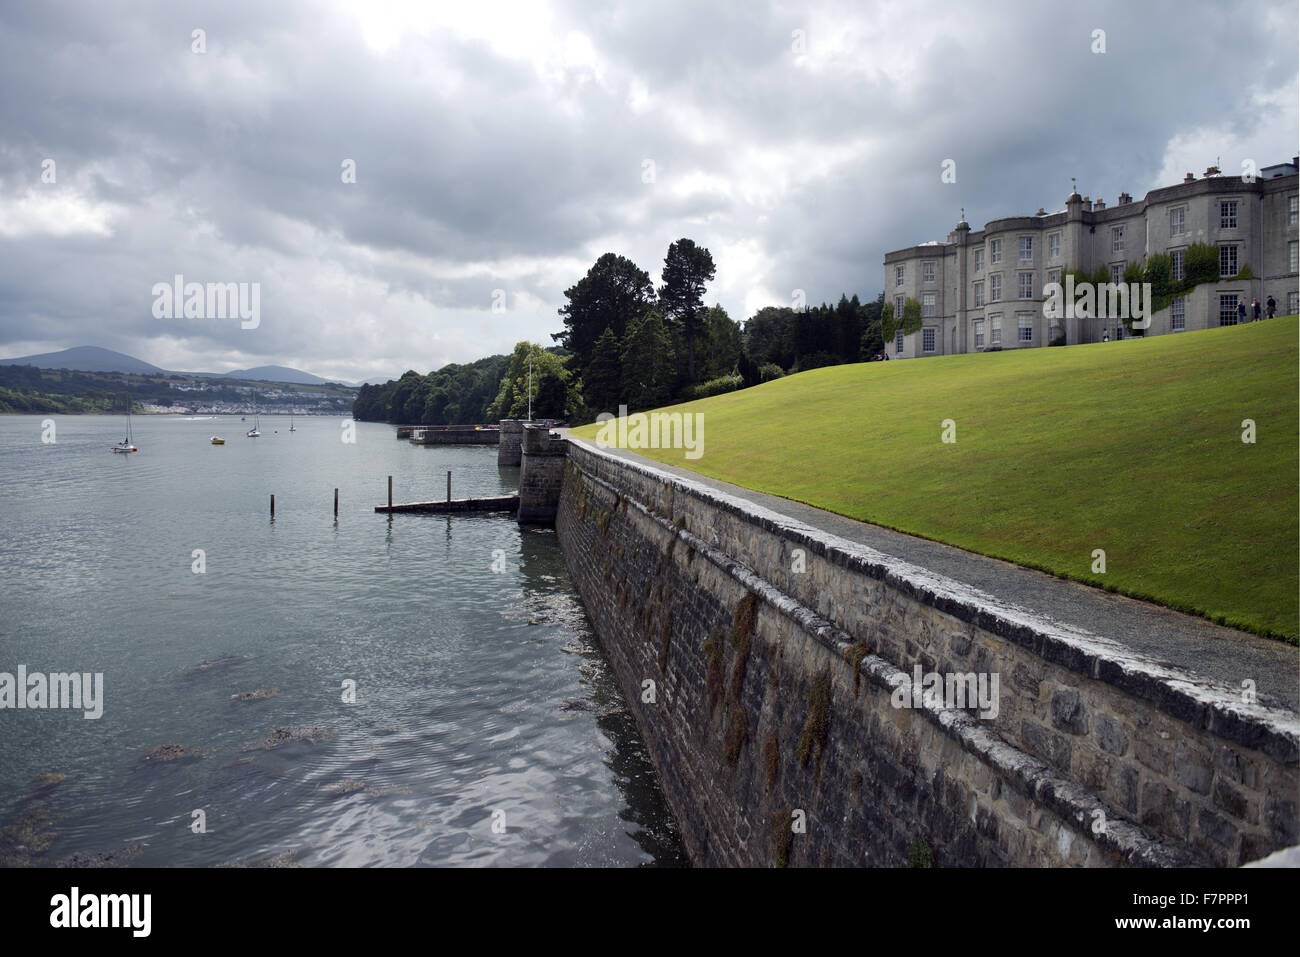 View of the Menai Strait adjacent to Plas Newydd Country House and Gardens, Anglesey, Wales. This fine 18th century Stock Photo